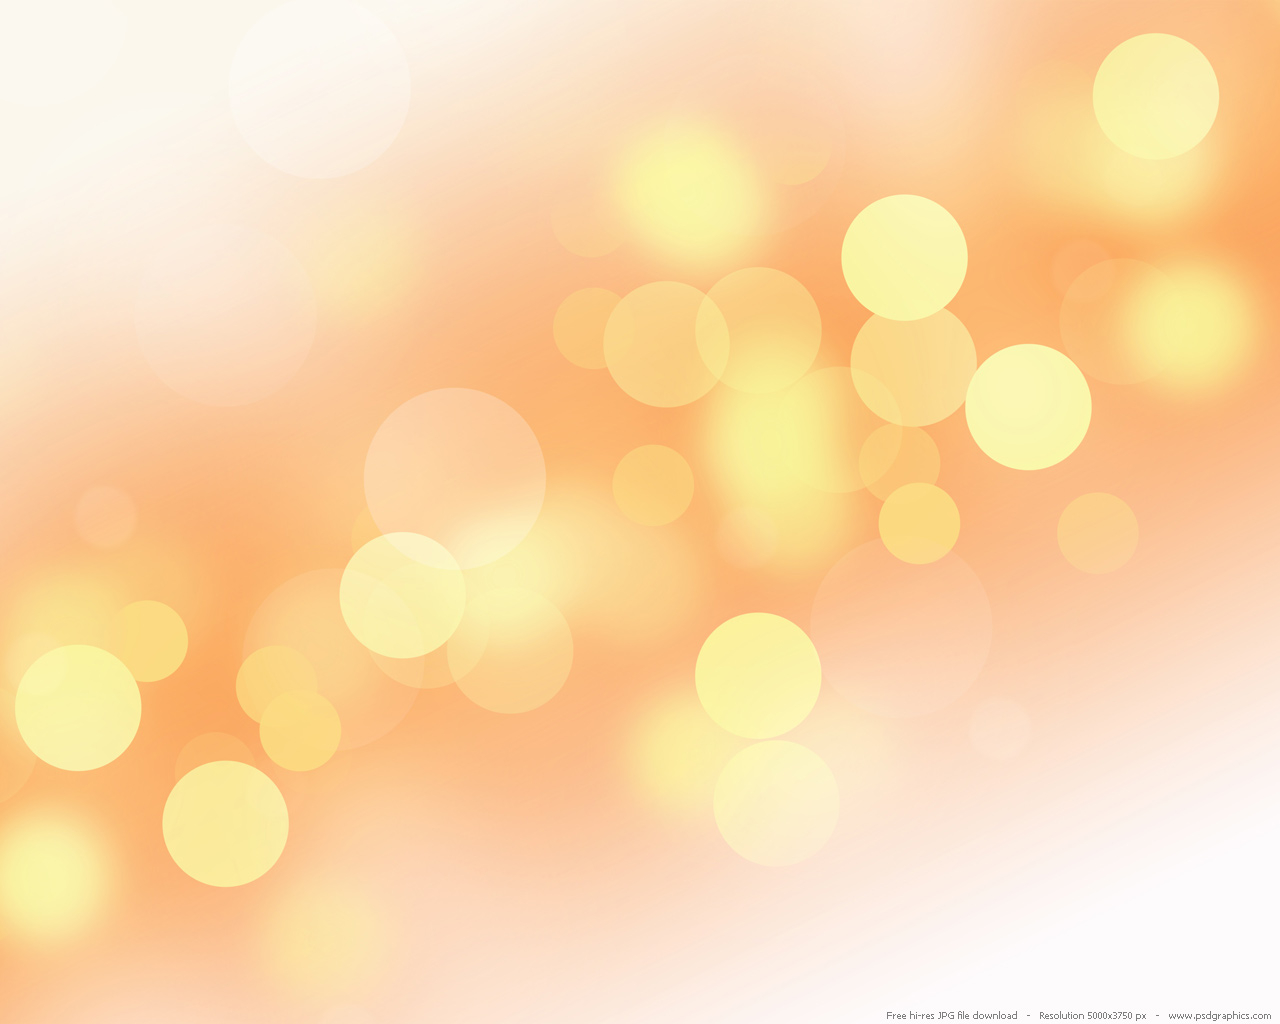 yellow-lights-background.jpg